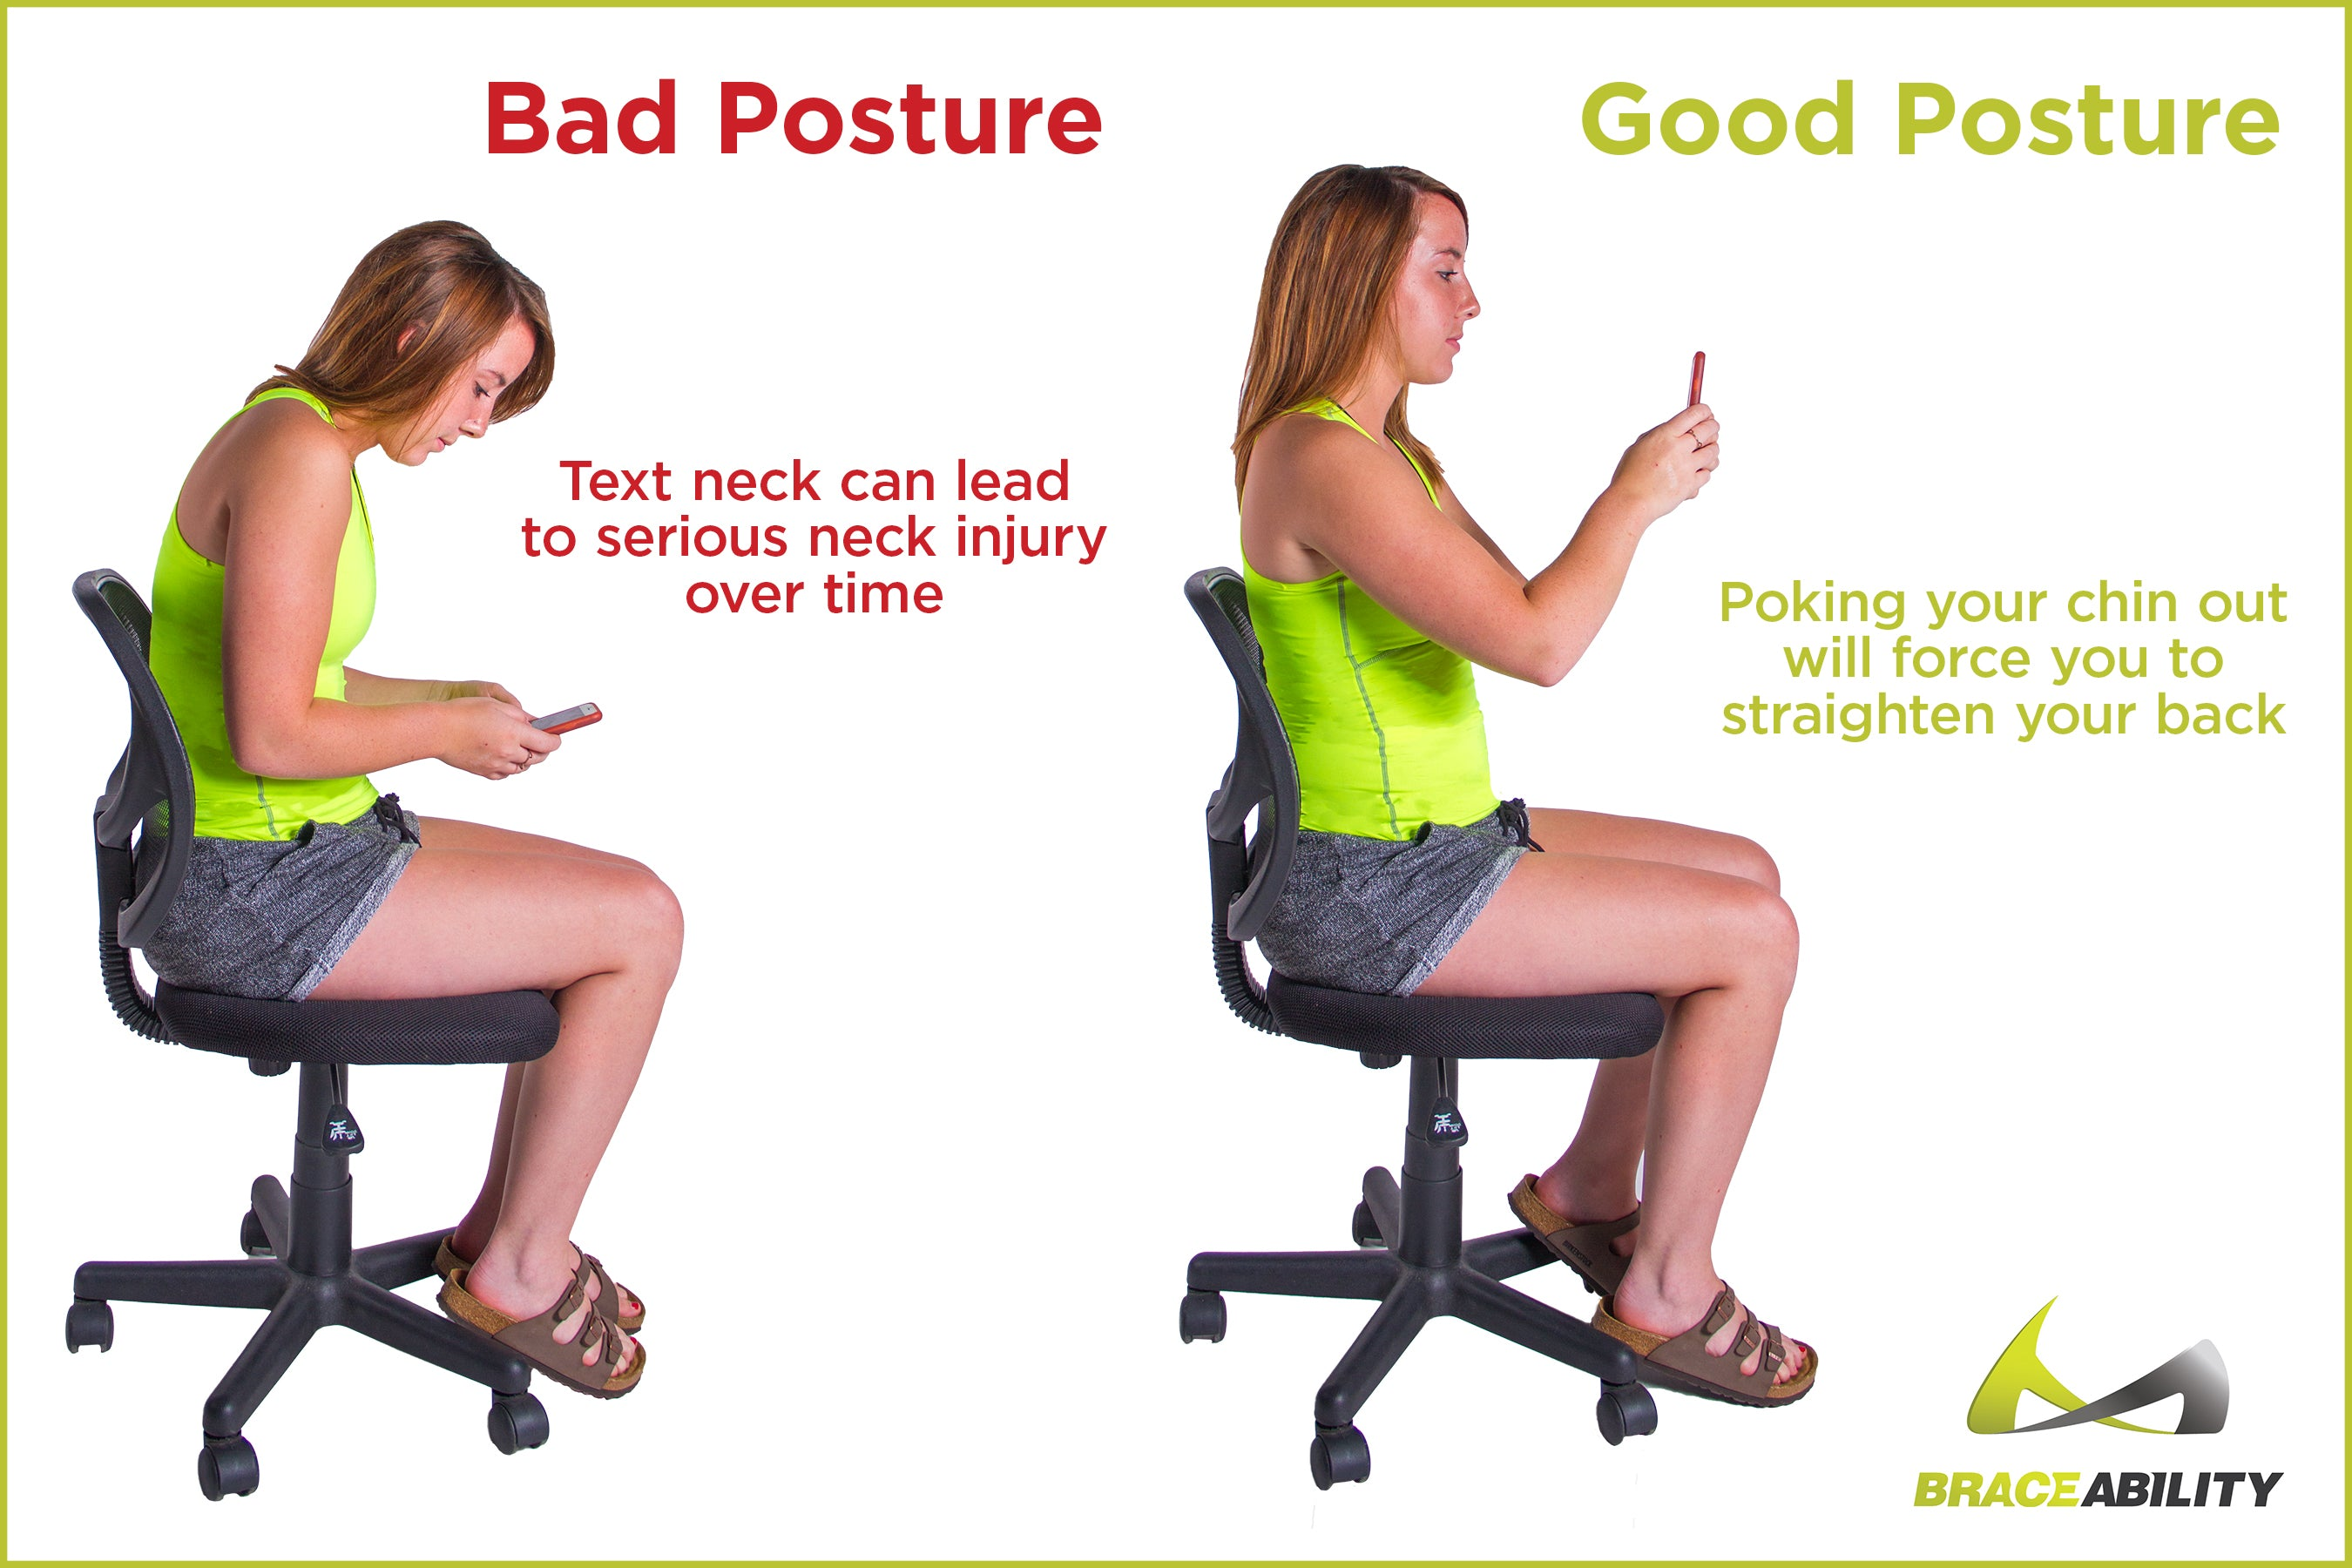 Proper sitting posture so you don't develop text neck